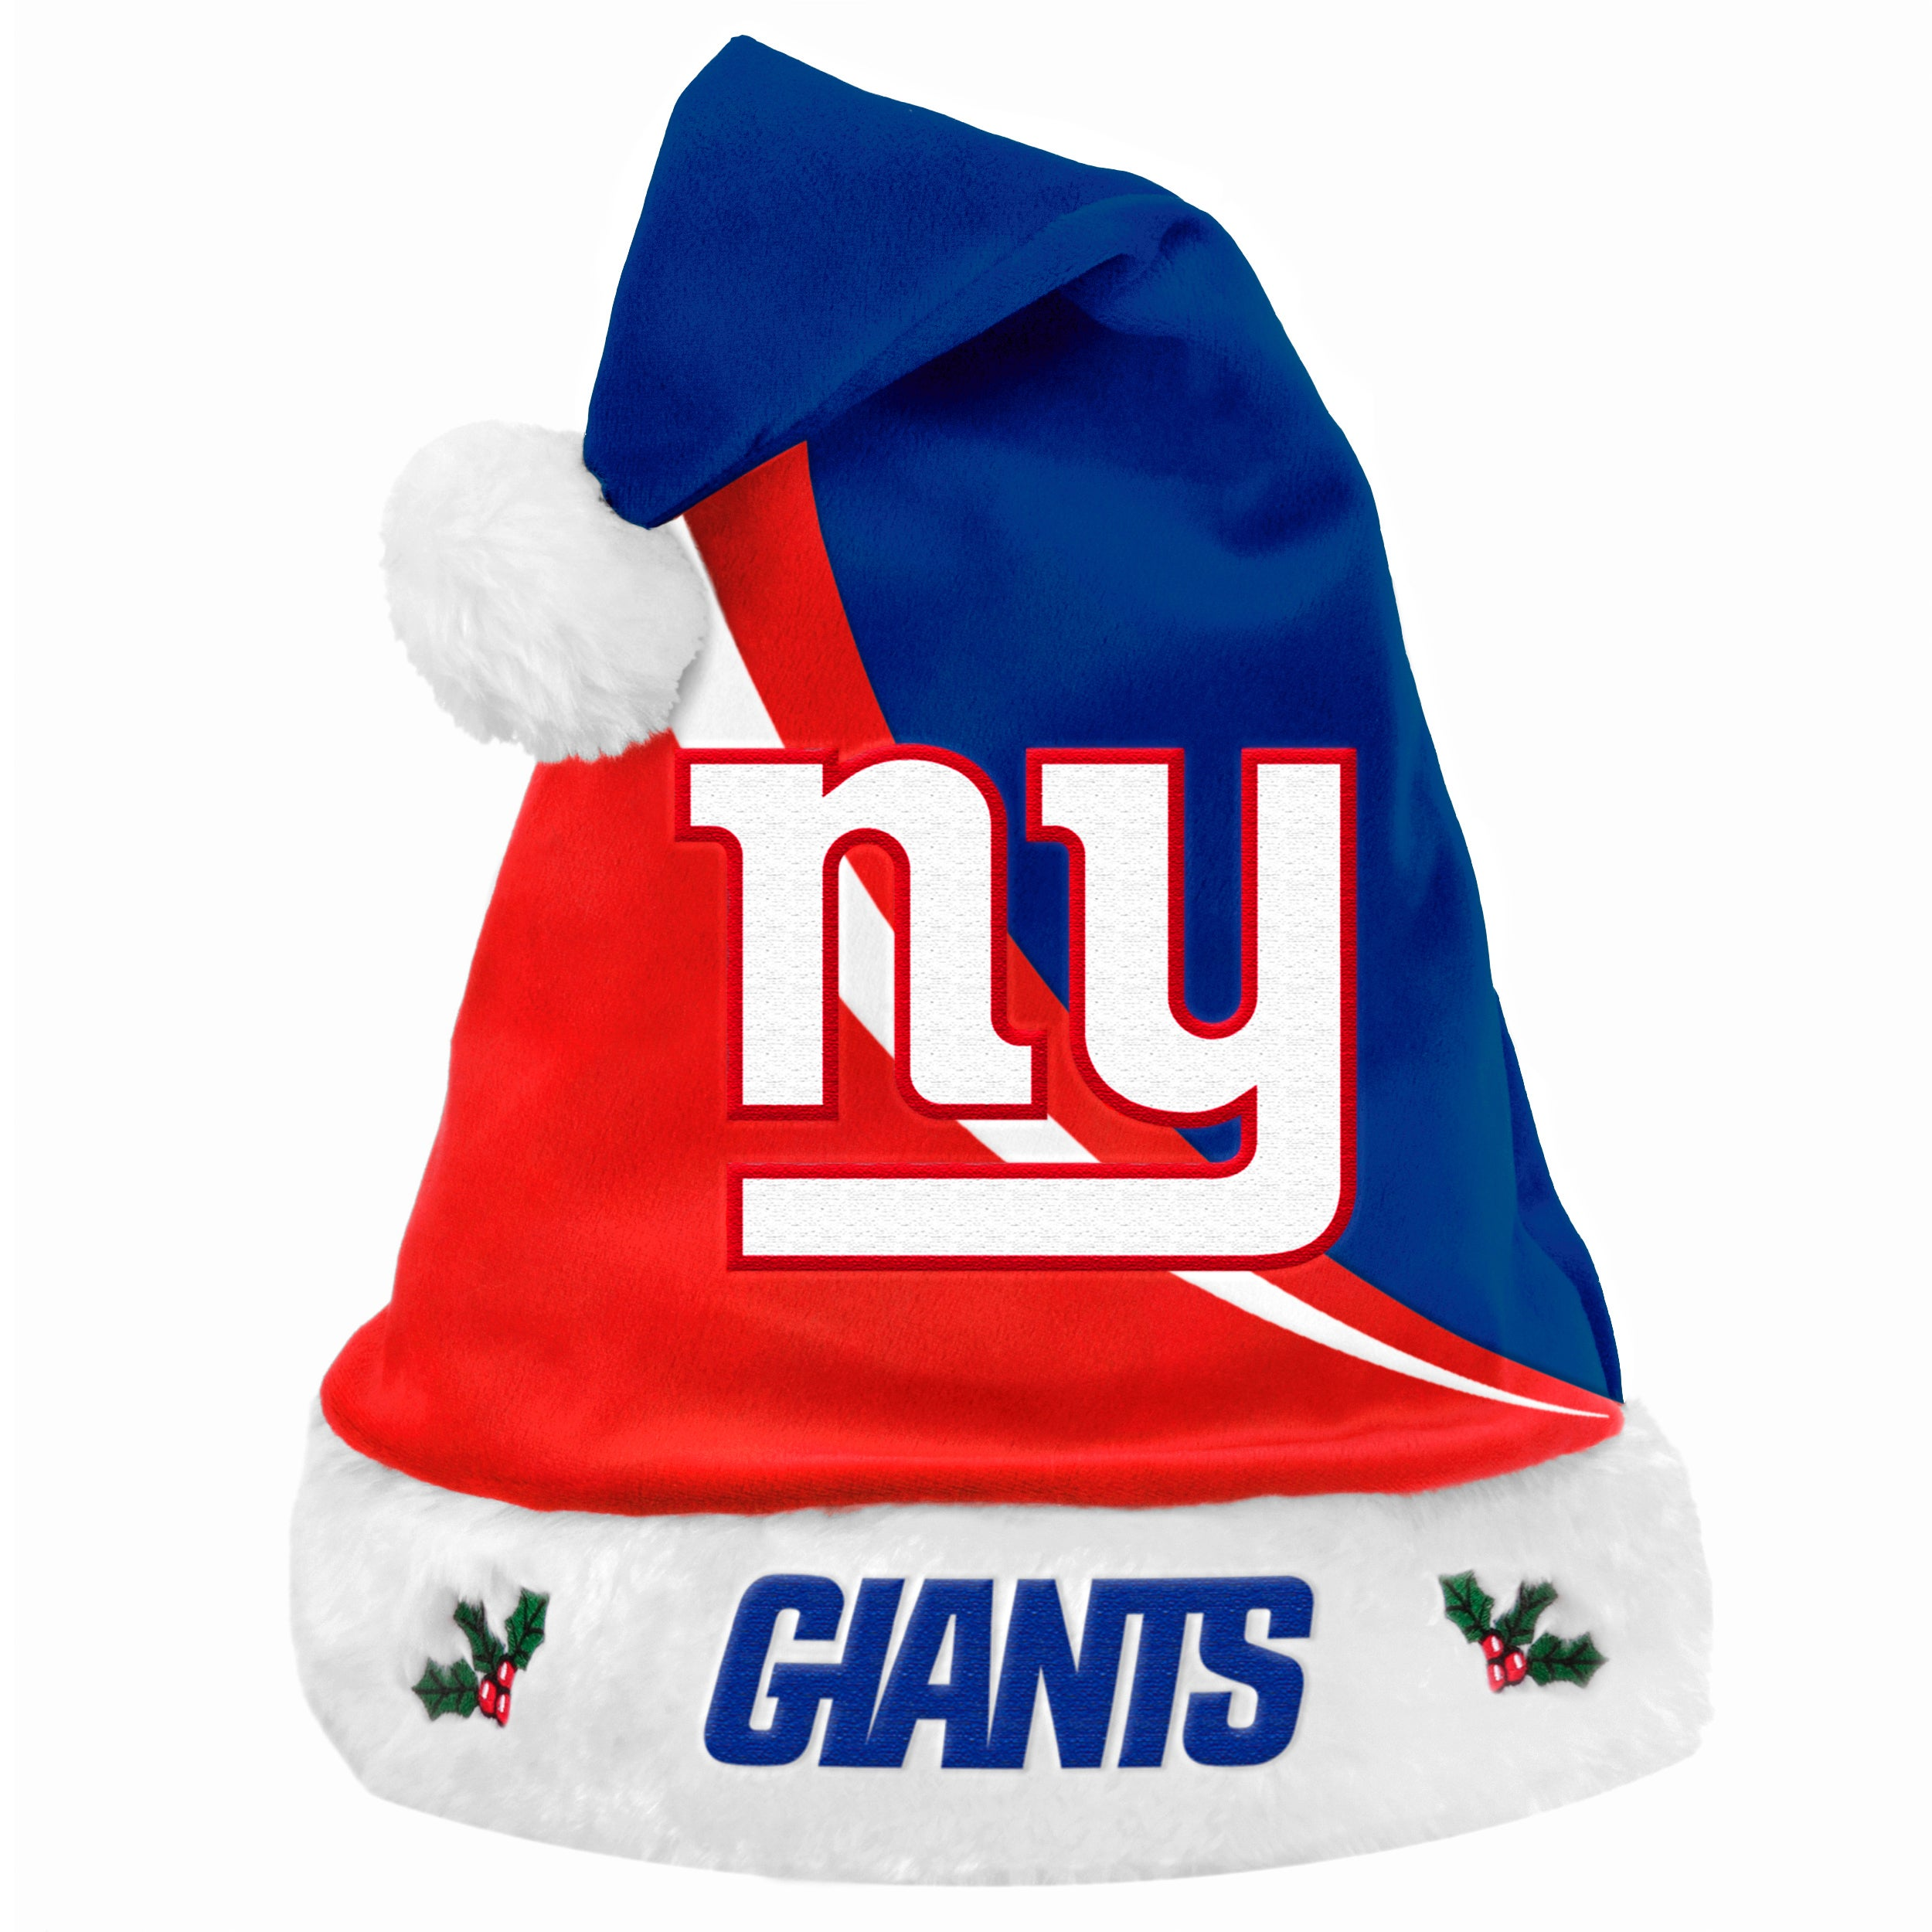 740526c12d05aa Shop New York Giants Polyester Swoop Santa Hat - Free Shipping On Orders  Over $45 - - 9444907